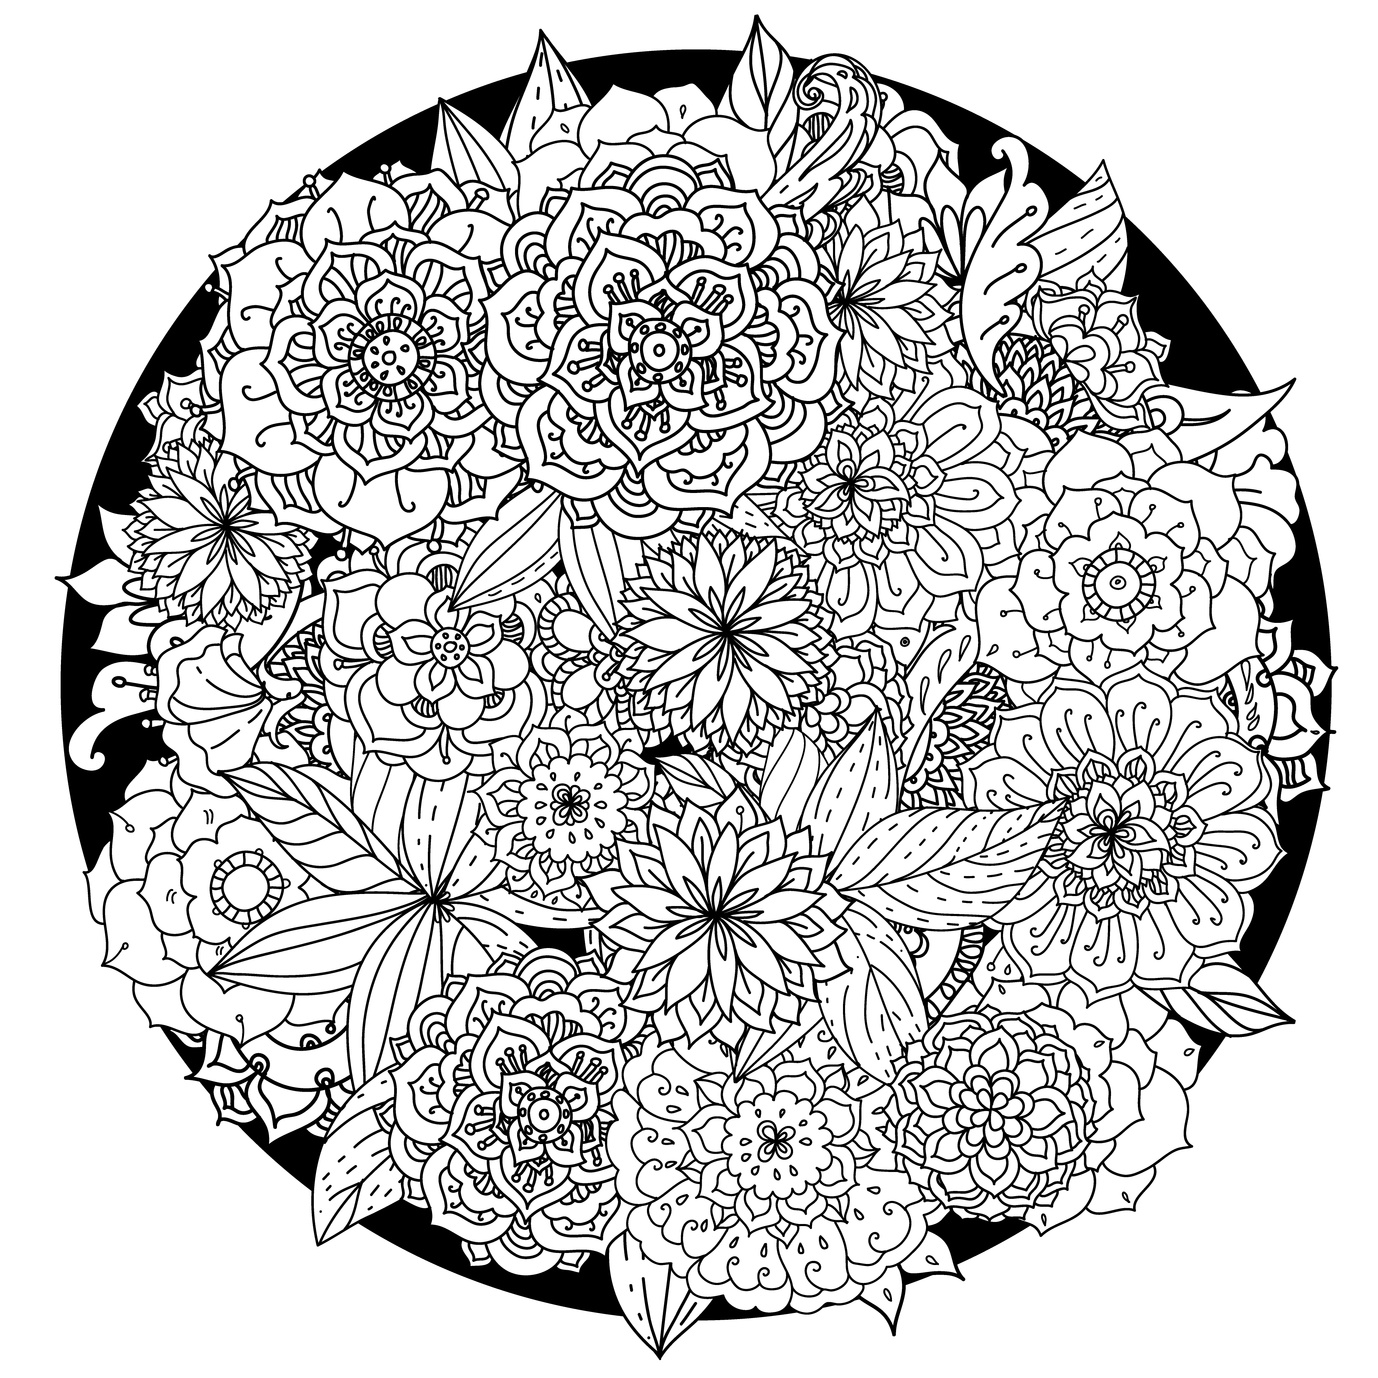 mandalas to color for adults adult coloring pages mandalas coloring home for mandalas to color adults